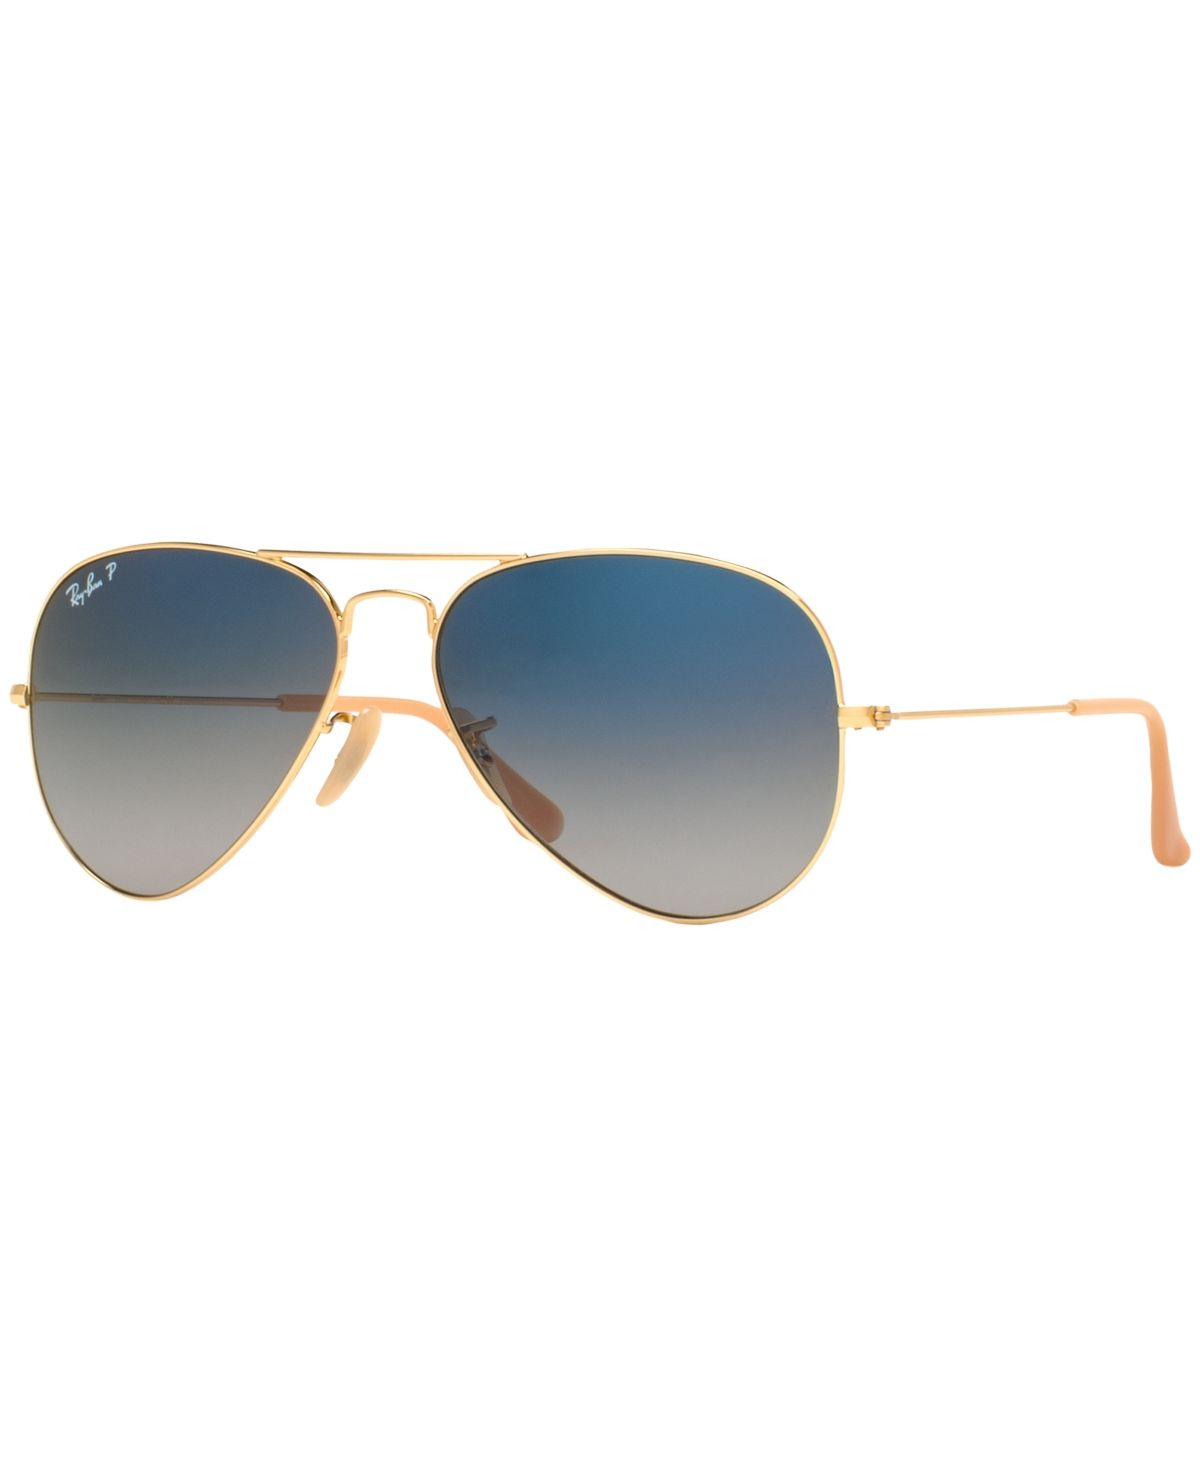 Sunglass Hut Outlet: Ray-Ban Polarized Sunglasses , RB3025 AVIATOR GRADIENT